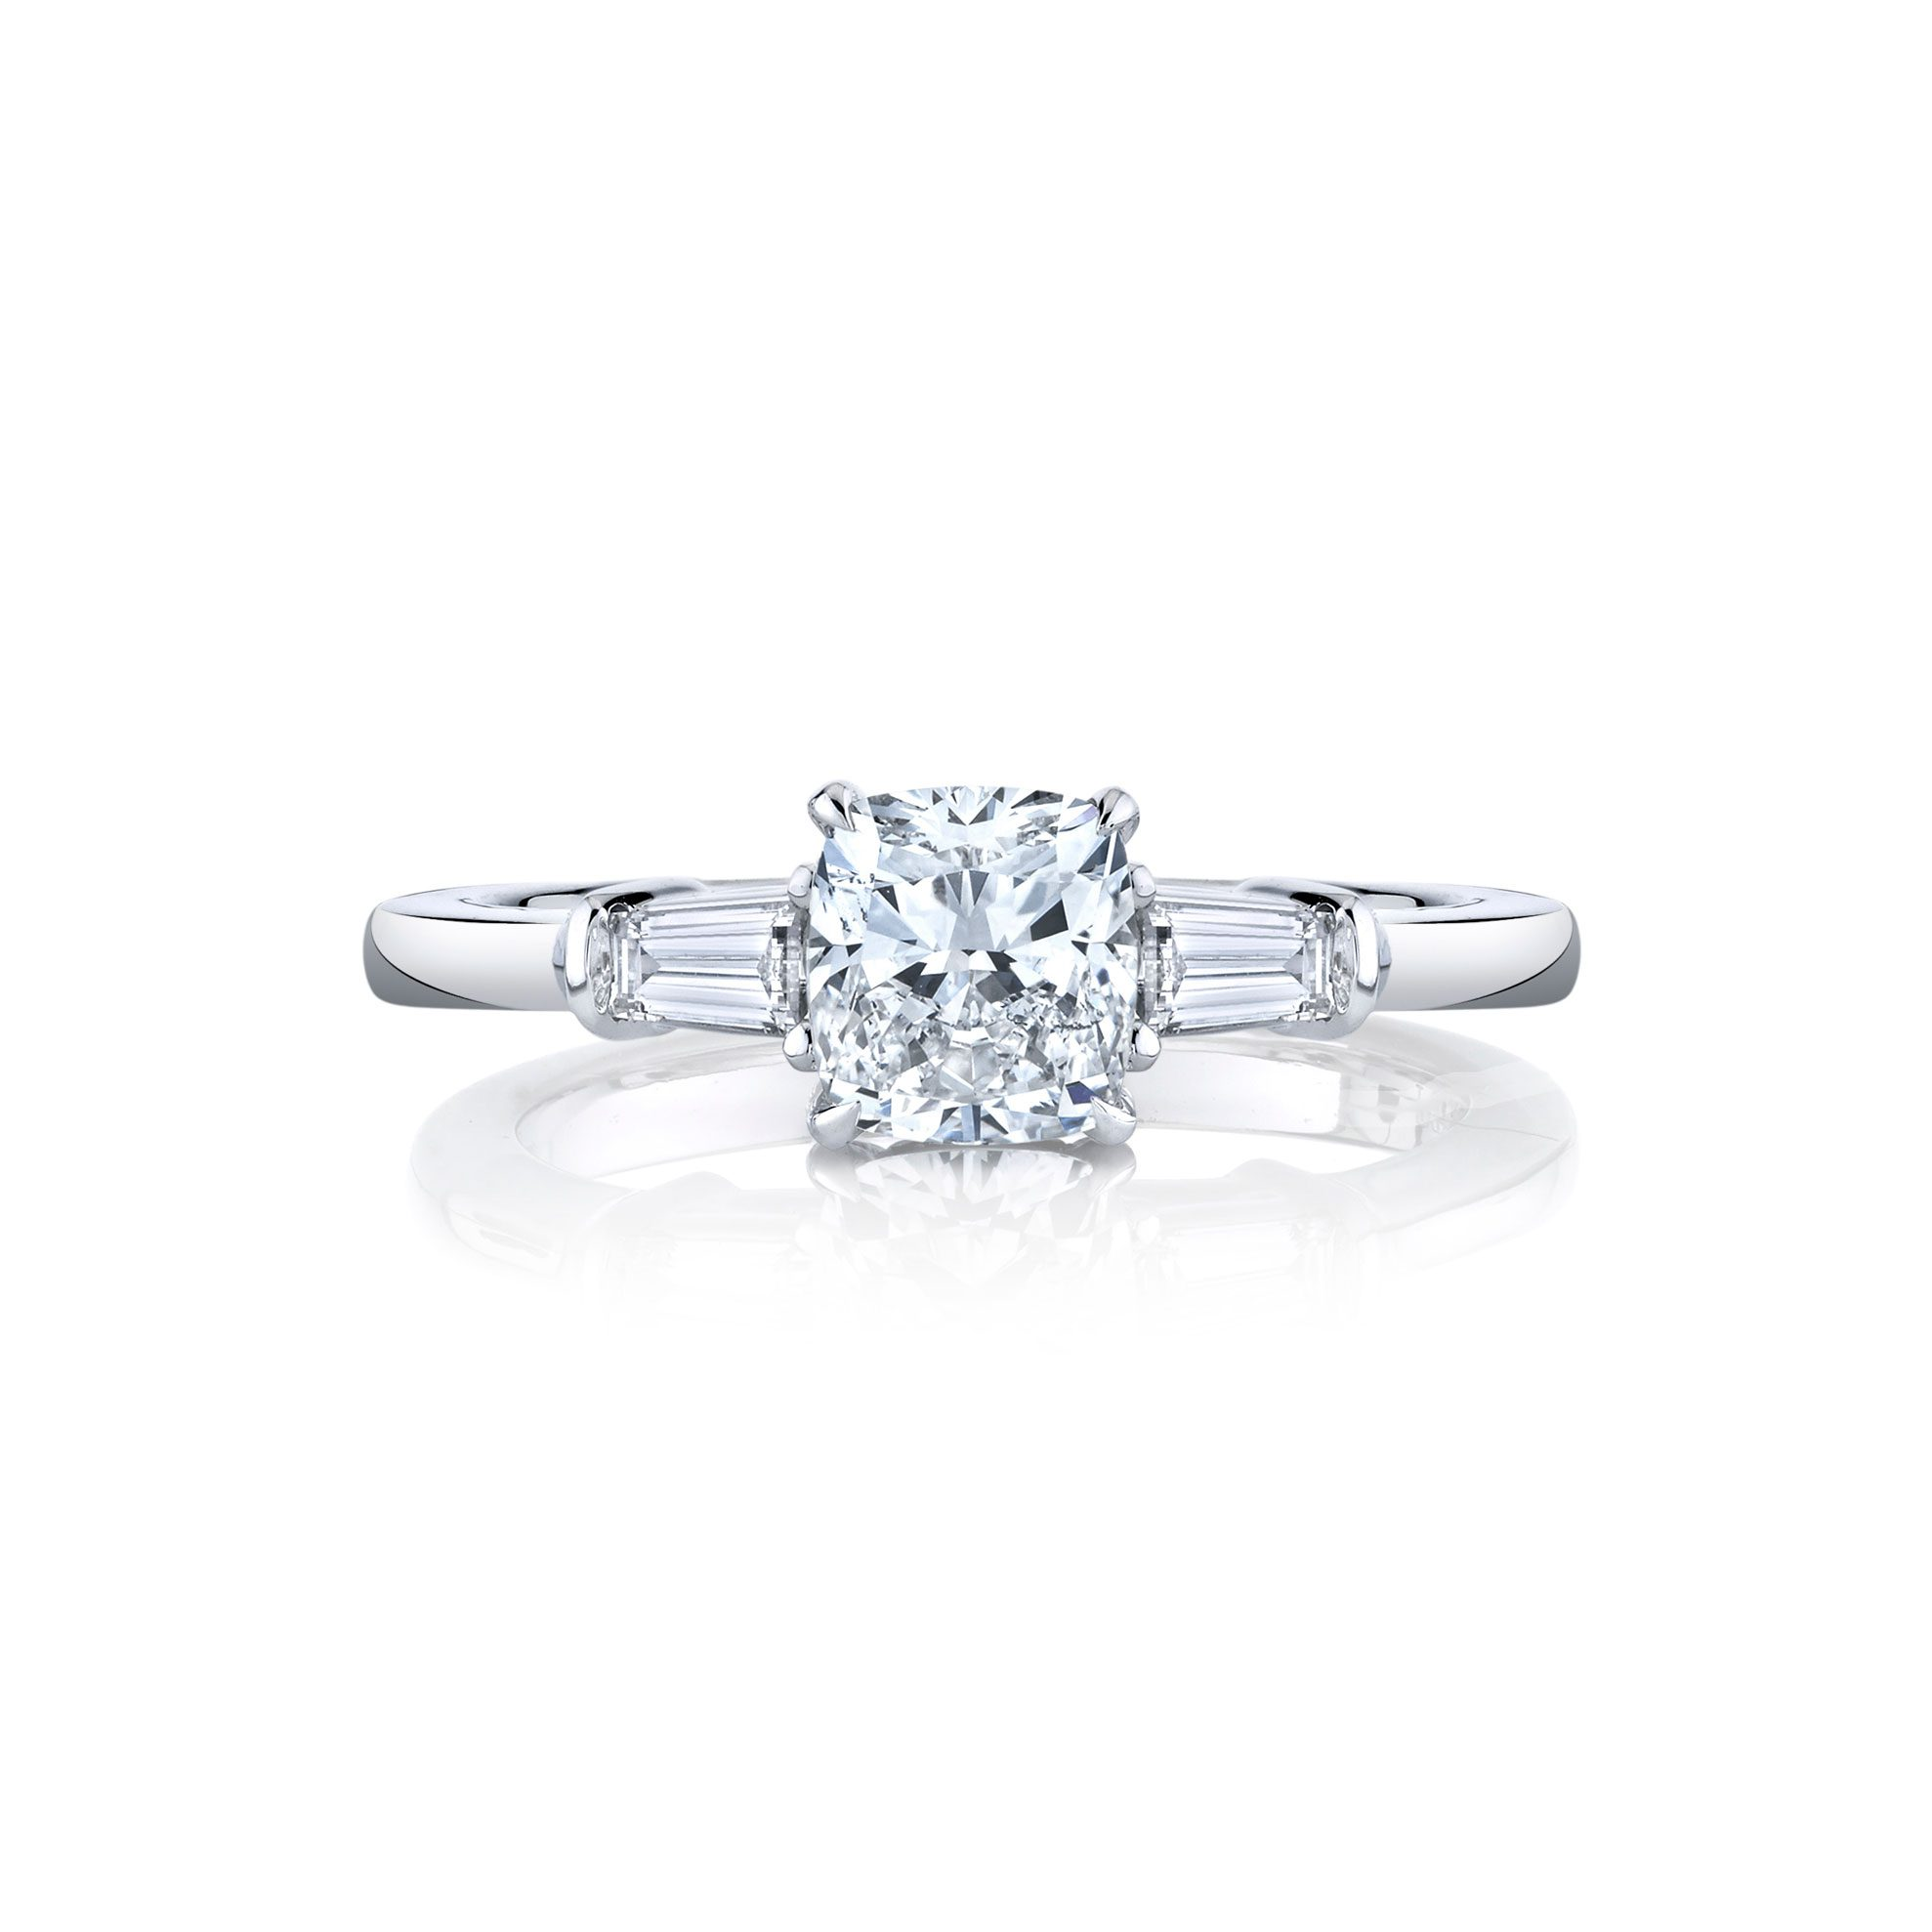 Claire Cushion Three Stone Engagement Ring with tapered baguette diamond side stones in 18k White Gold Front View by Oui by Jean Dousset